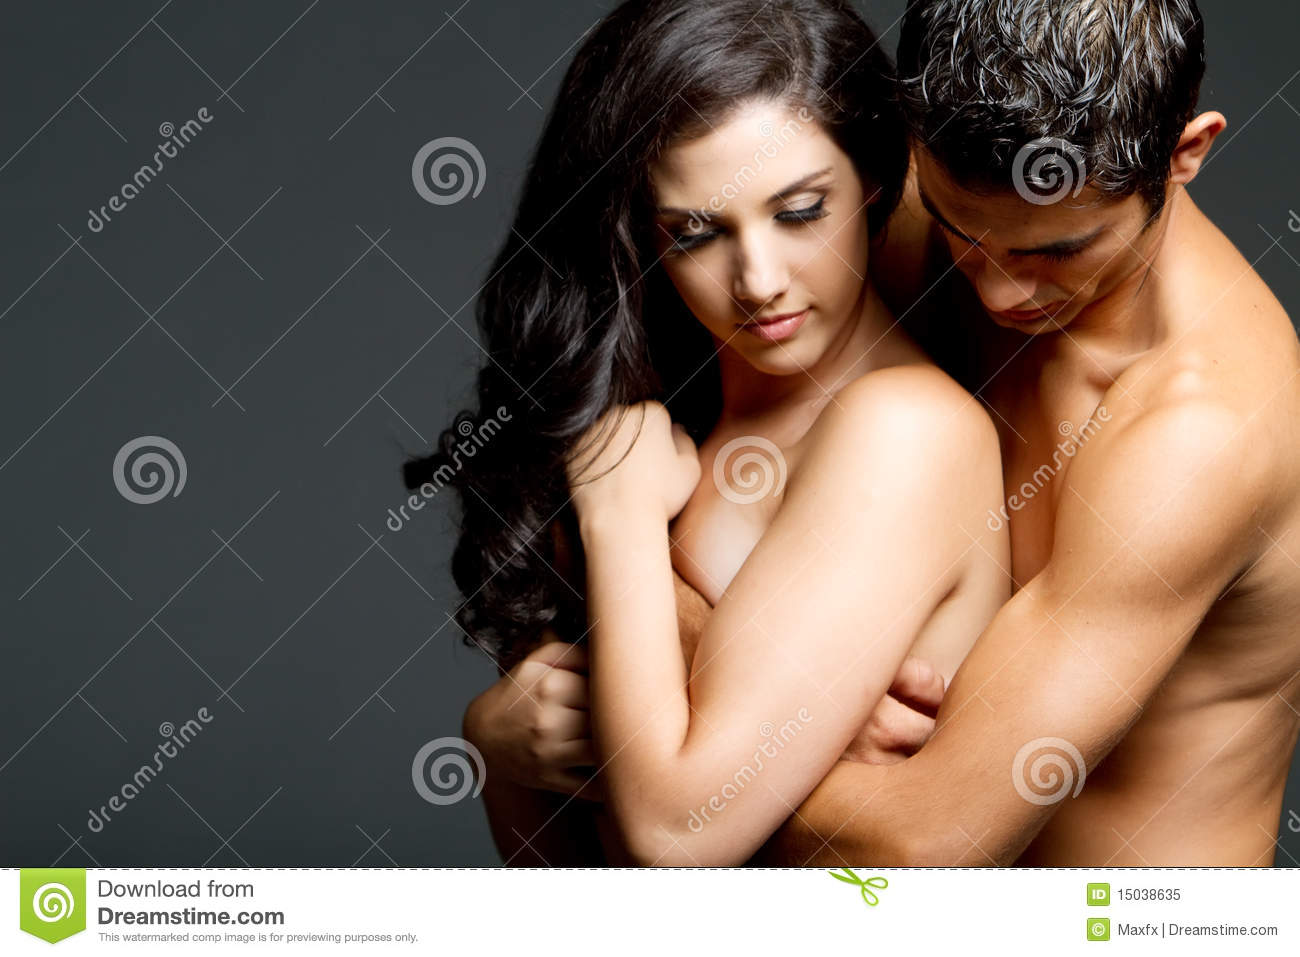 Romantic erotic video thumbs couples